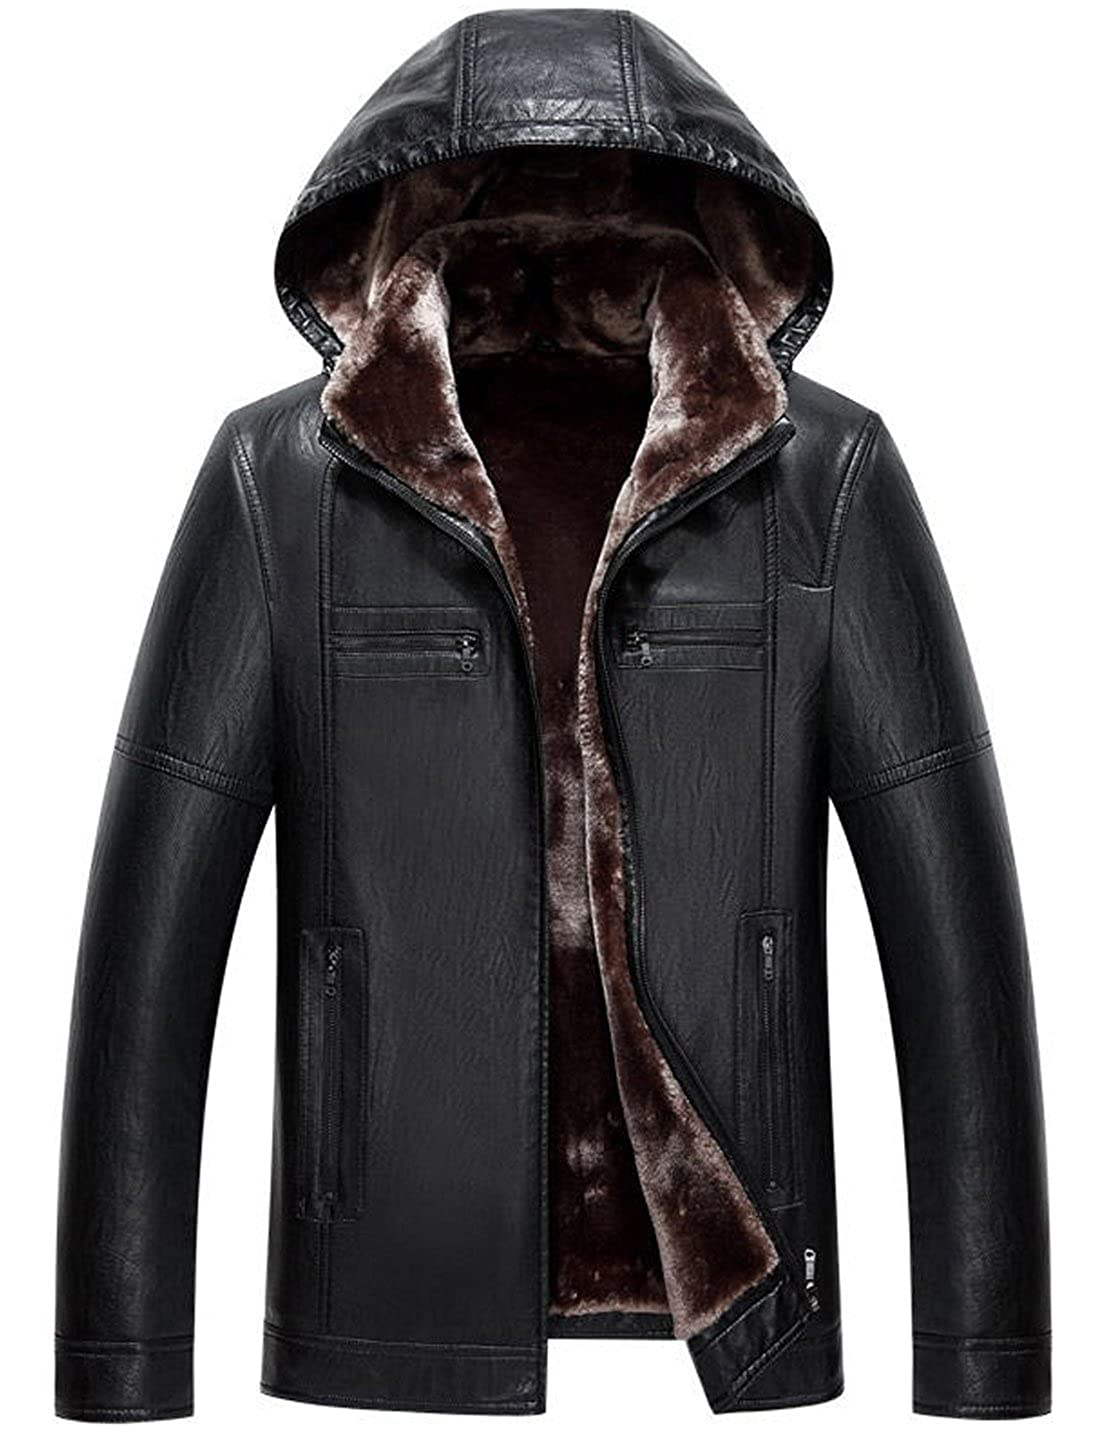 1783a3445c9 Tanming Men s Winter Warm Leather Coat Real Fur Hooded Leather ...